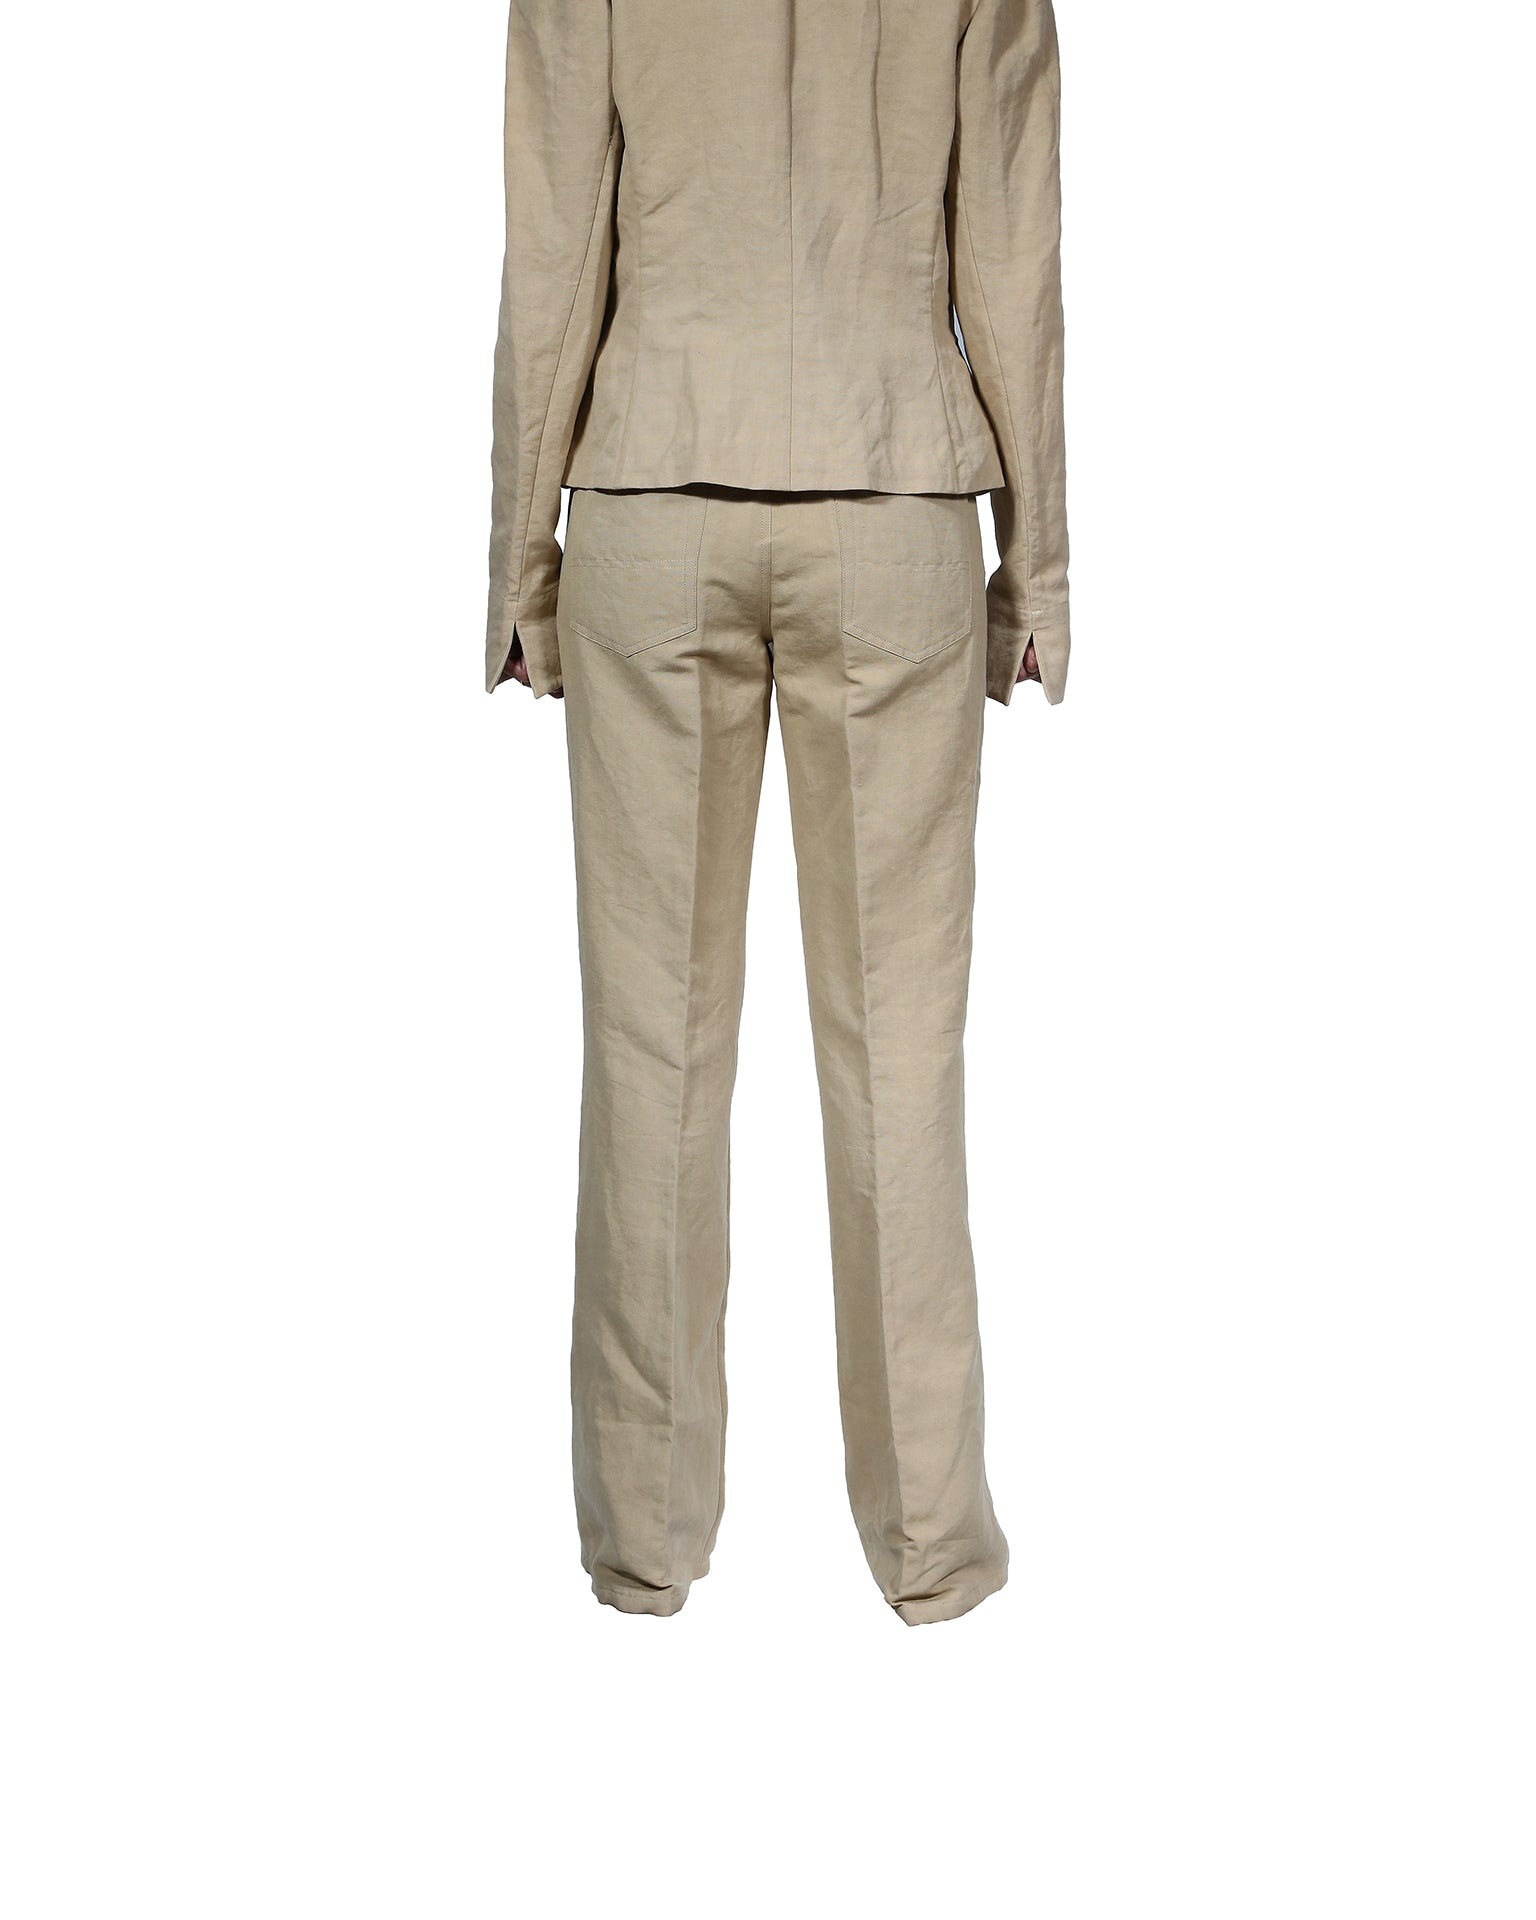 Ralph Lauren Safari Suit in Beige Size 38 (EU)